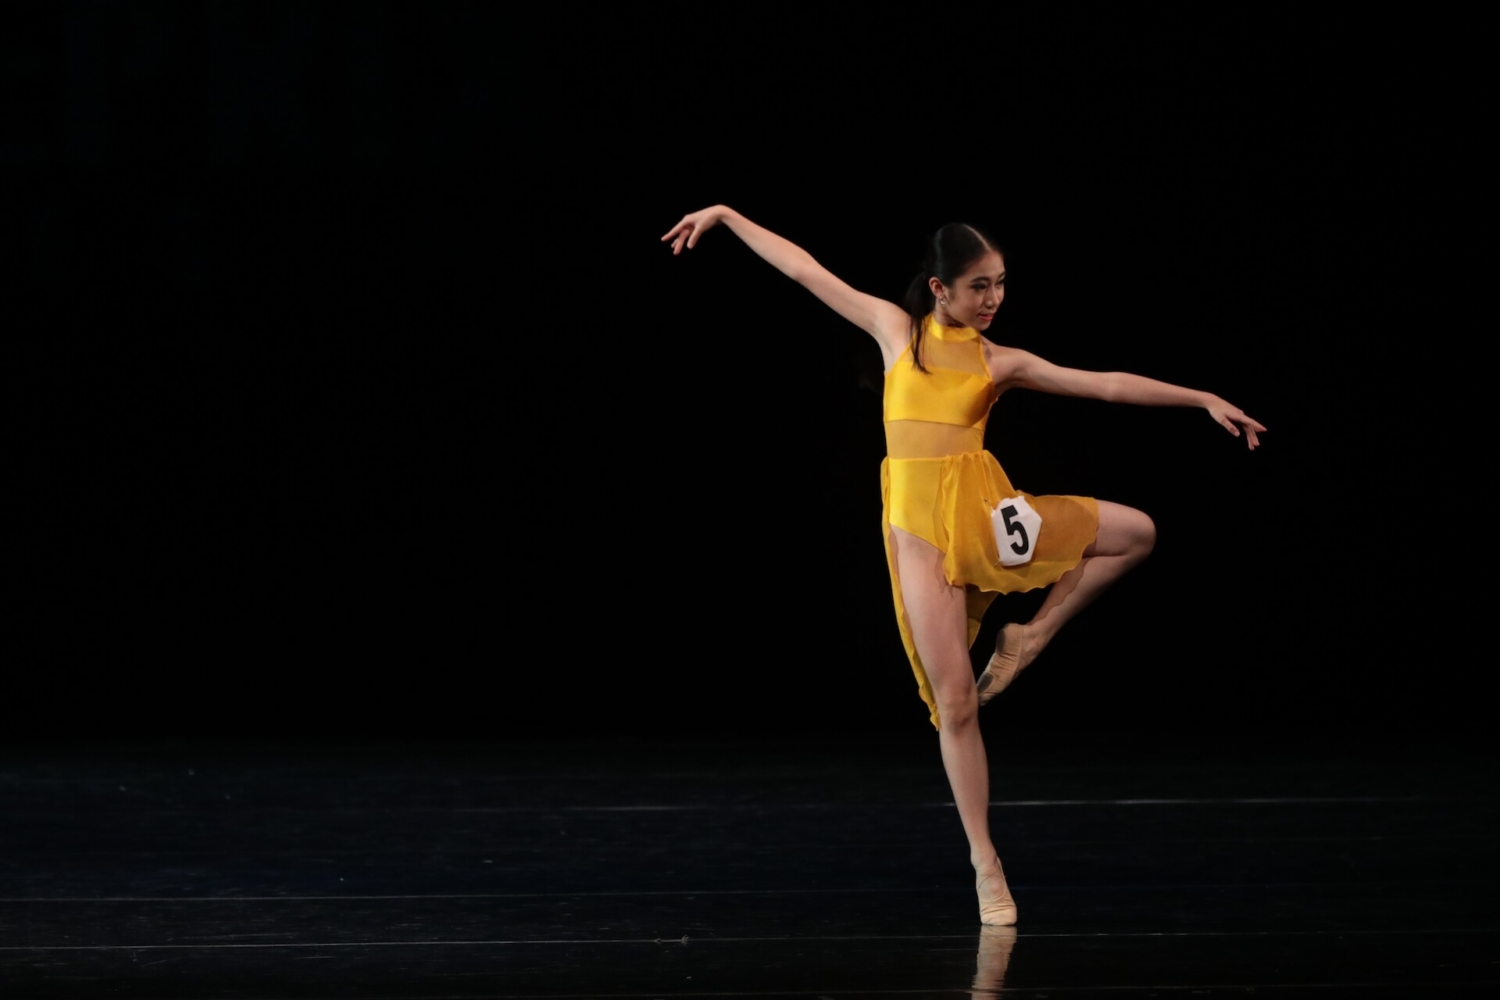 Dance Prix Indonesia 2019 – Contemporary Solo Finalist, Angelina Natalie Halim